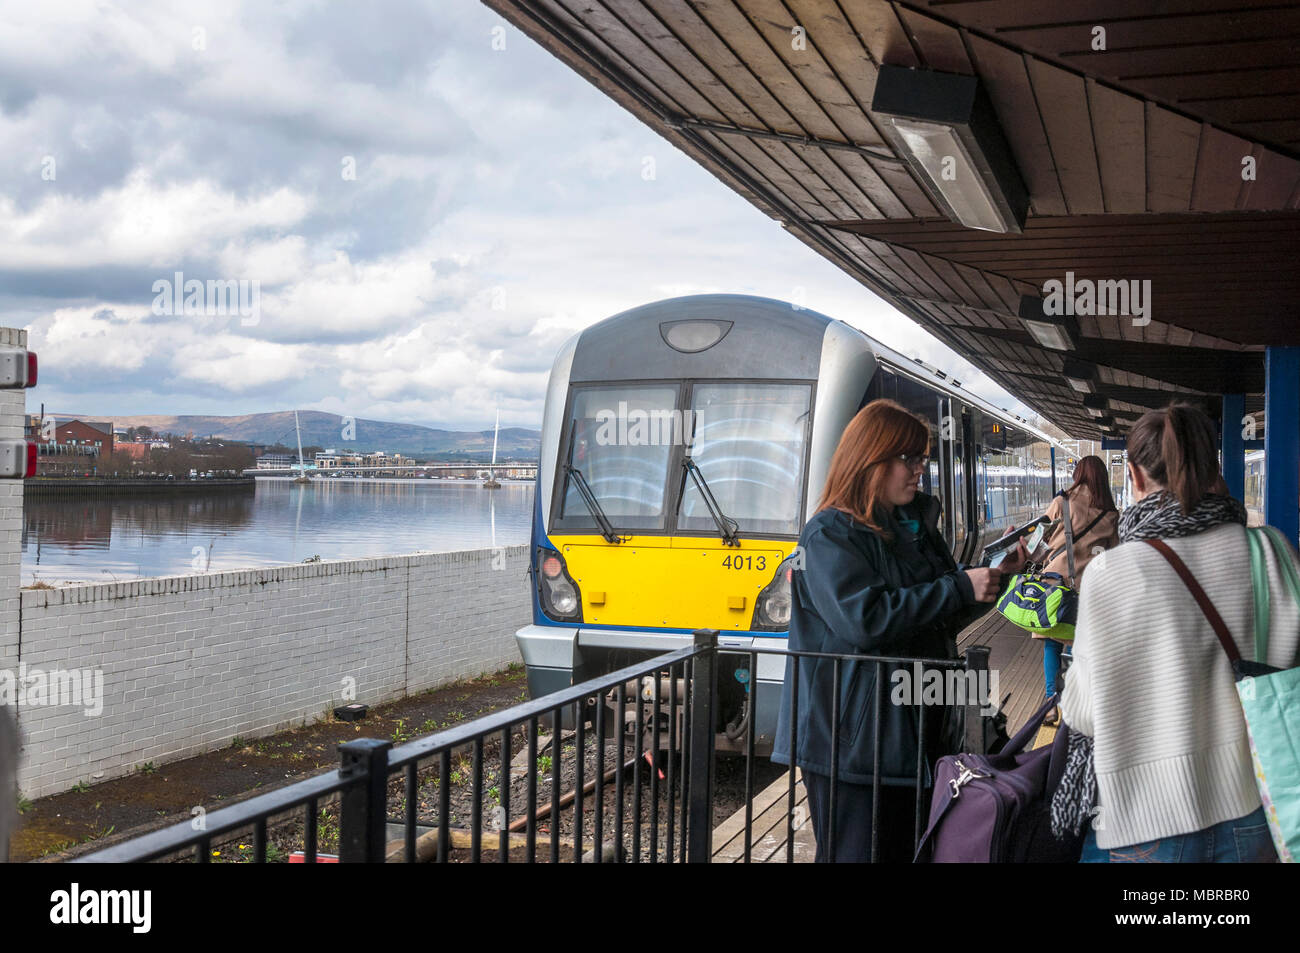 Railway station, Derry City, Londonderry, Northern Ireland, UK - Stock Image